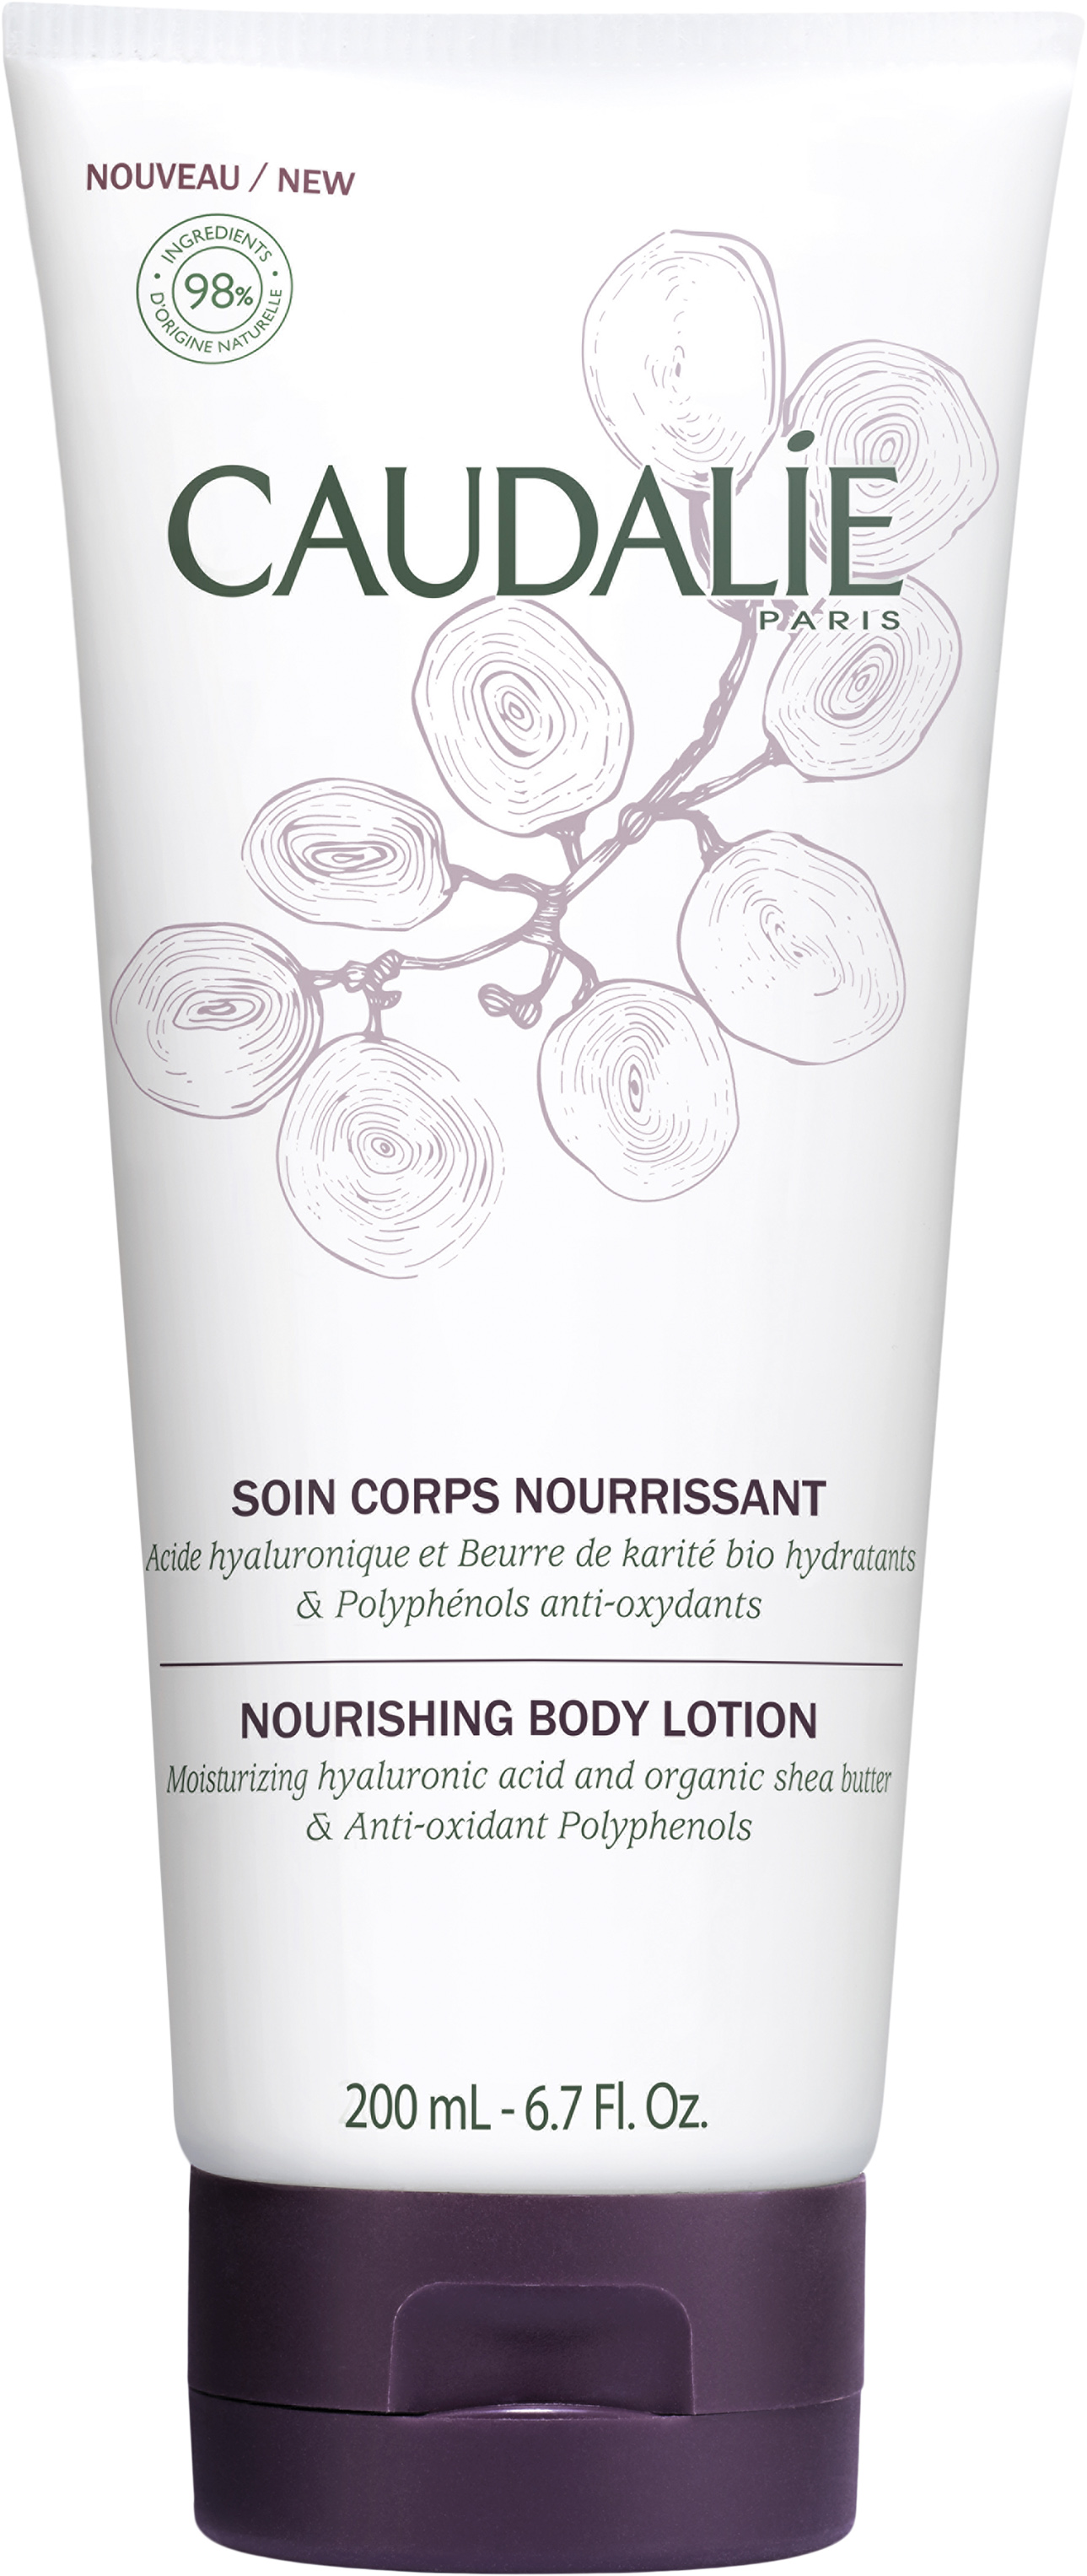 Caudalie - Nourishing Body Lotion 200 ml